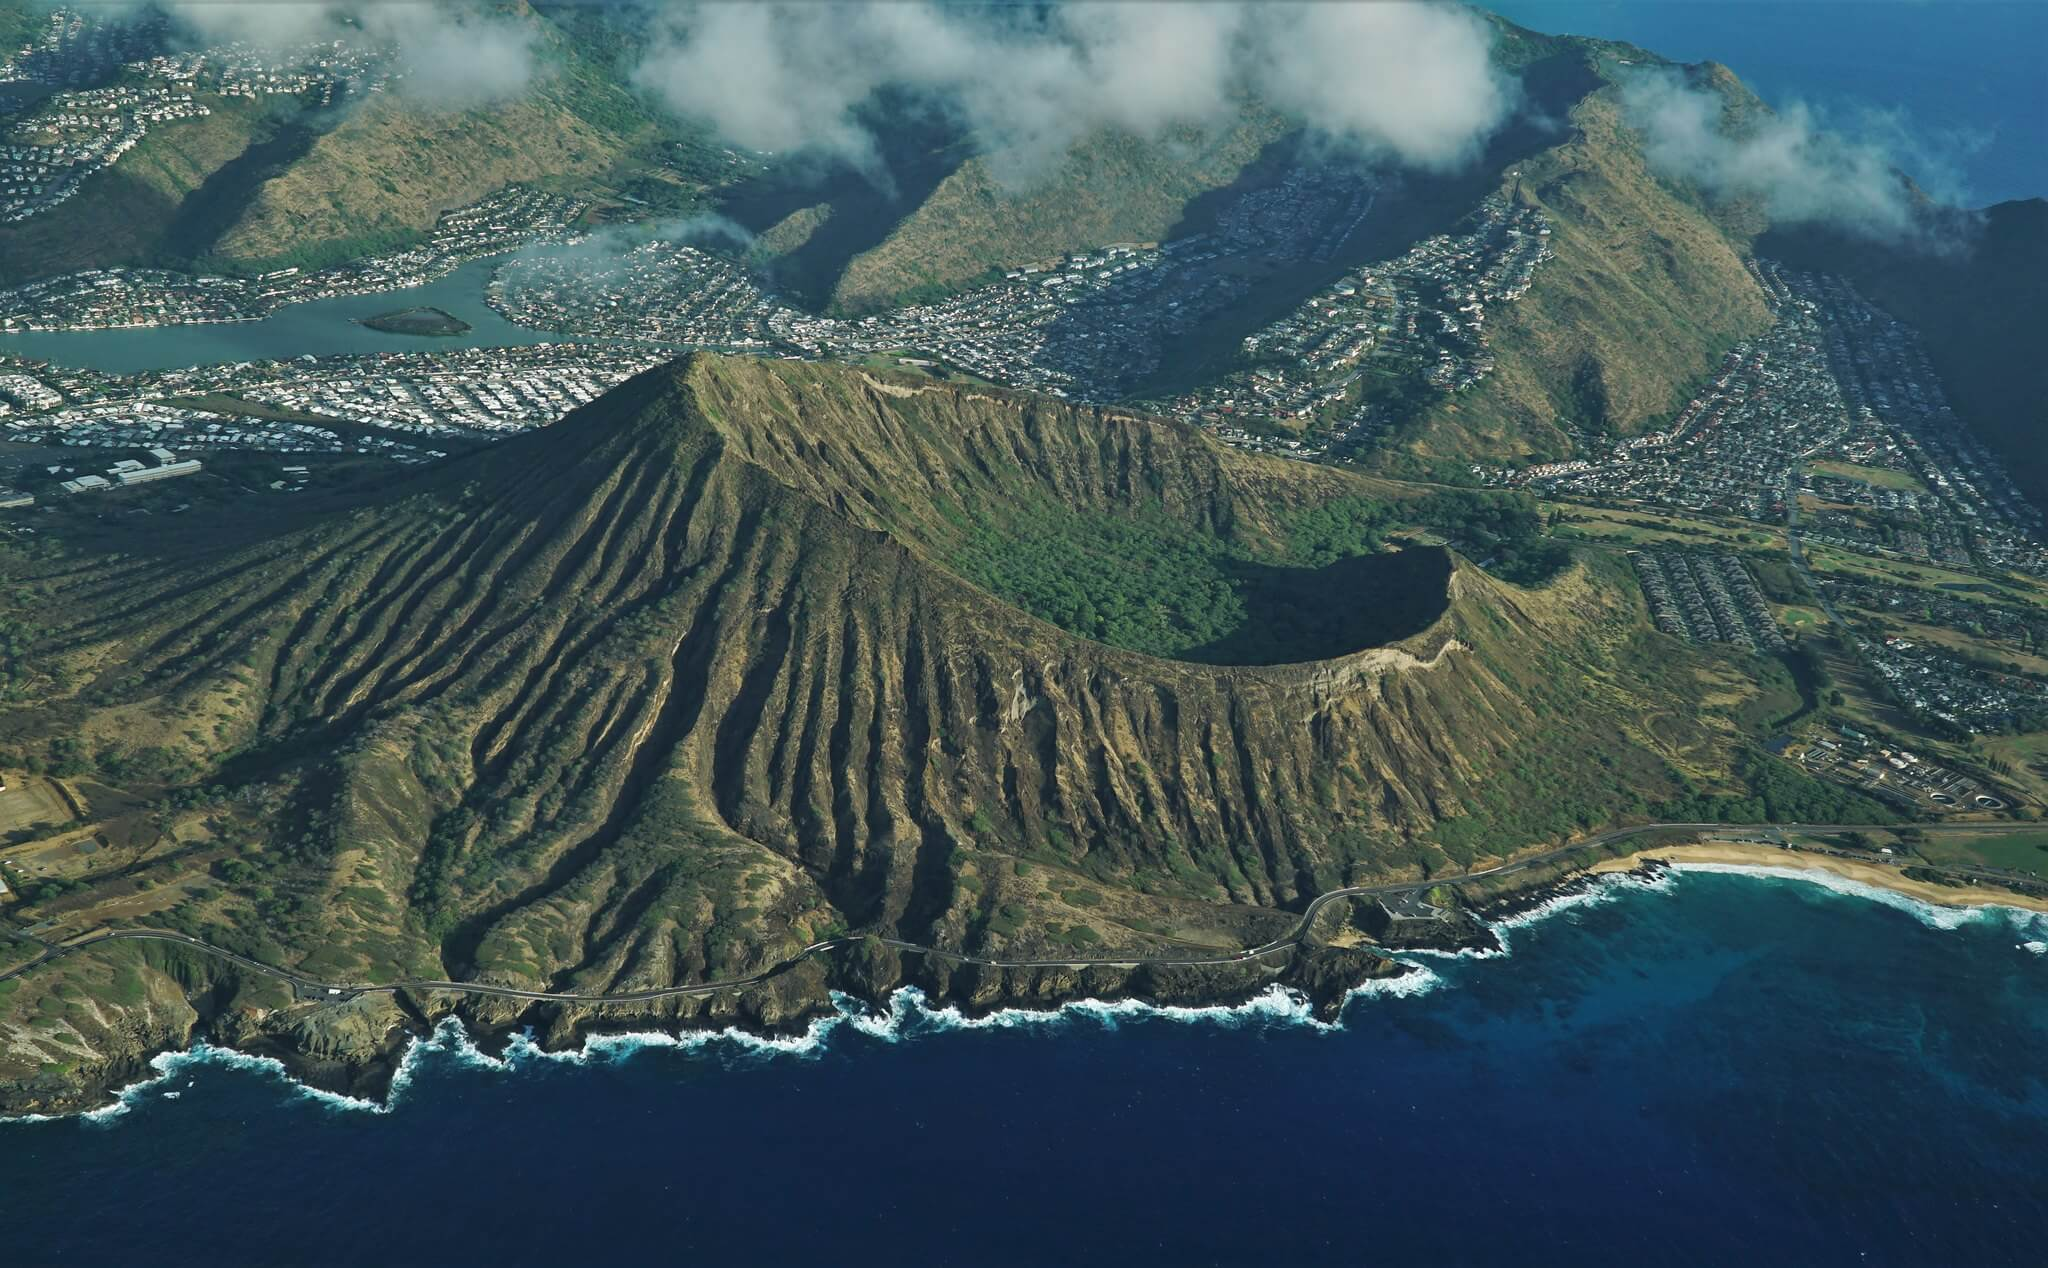 Overhead view of the Koko Crater Arch